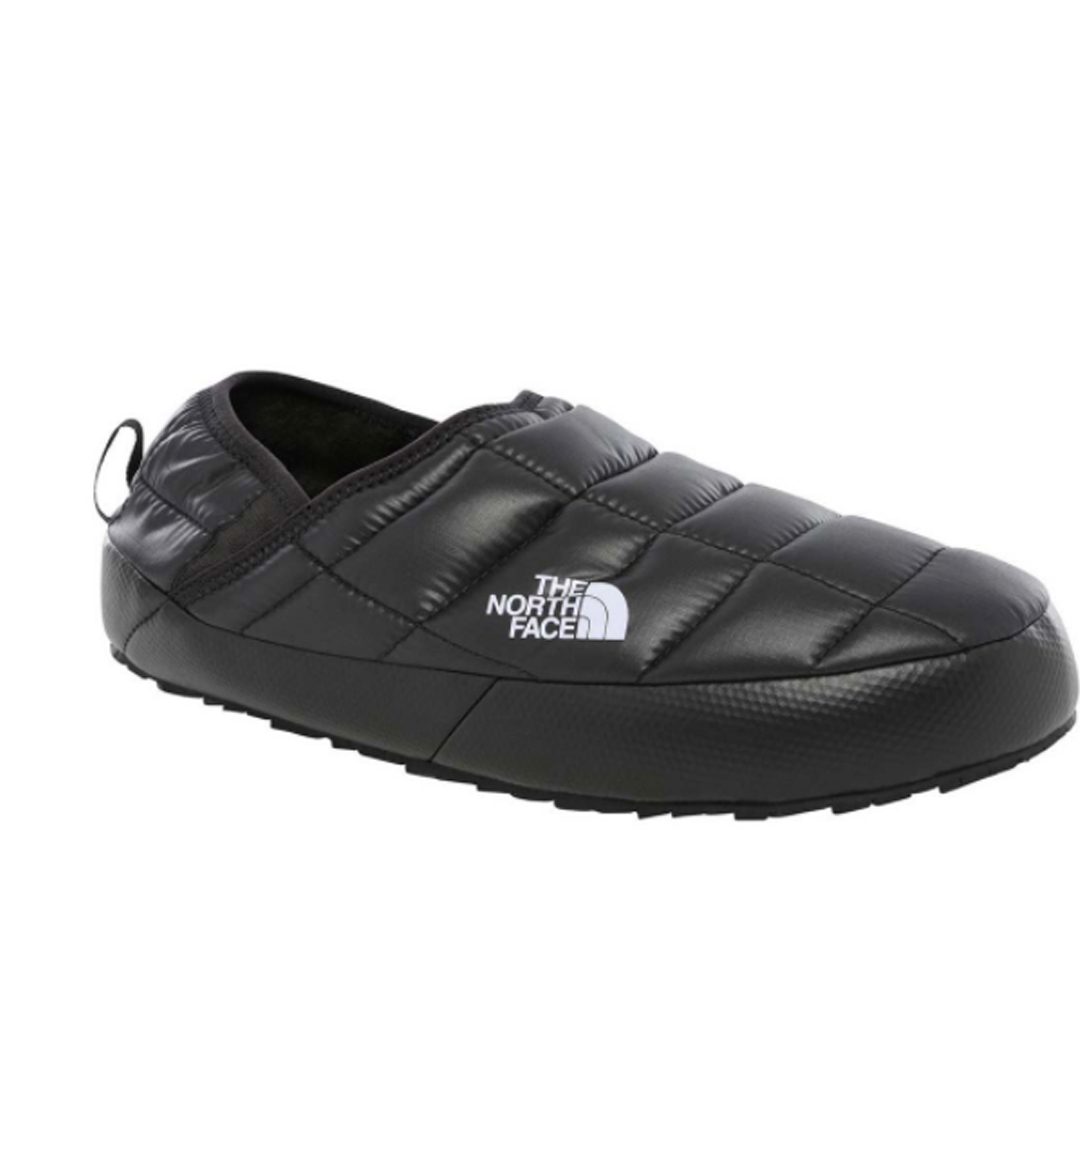 north face mens slippers mobile